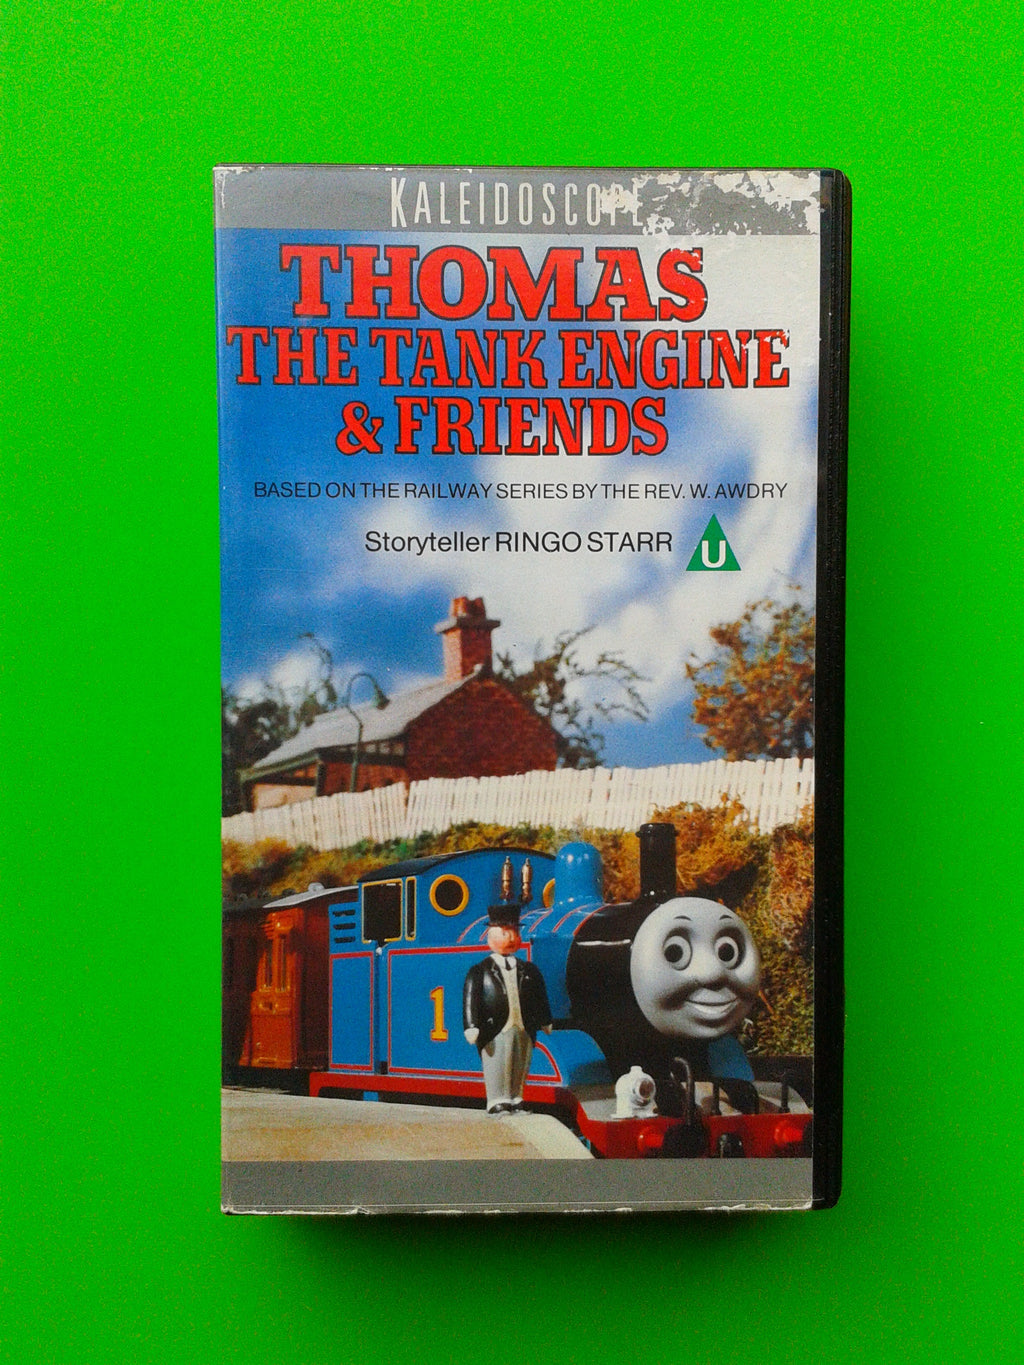 Thomas the Tank Engine and Friends VHS Video 1065